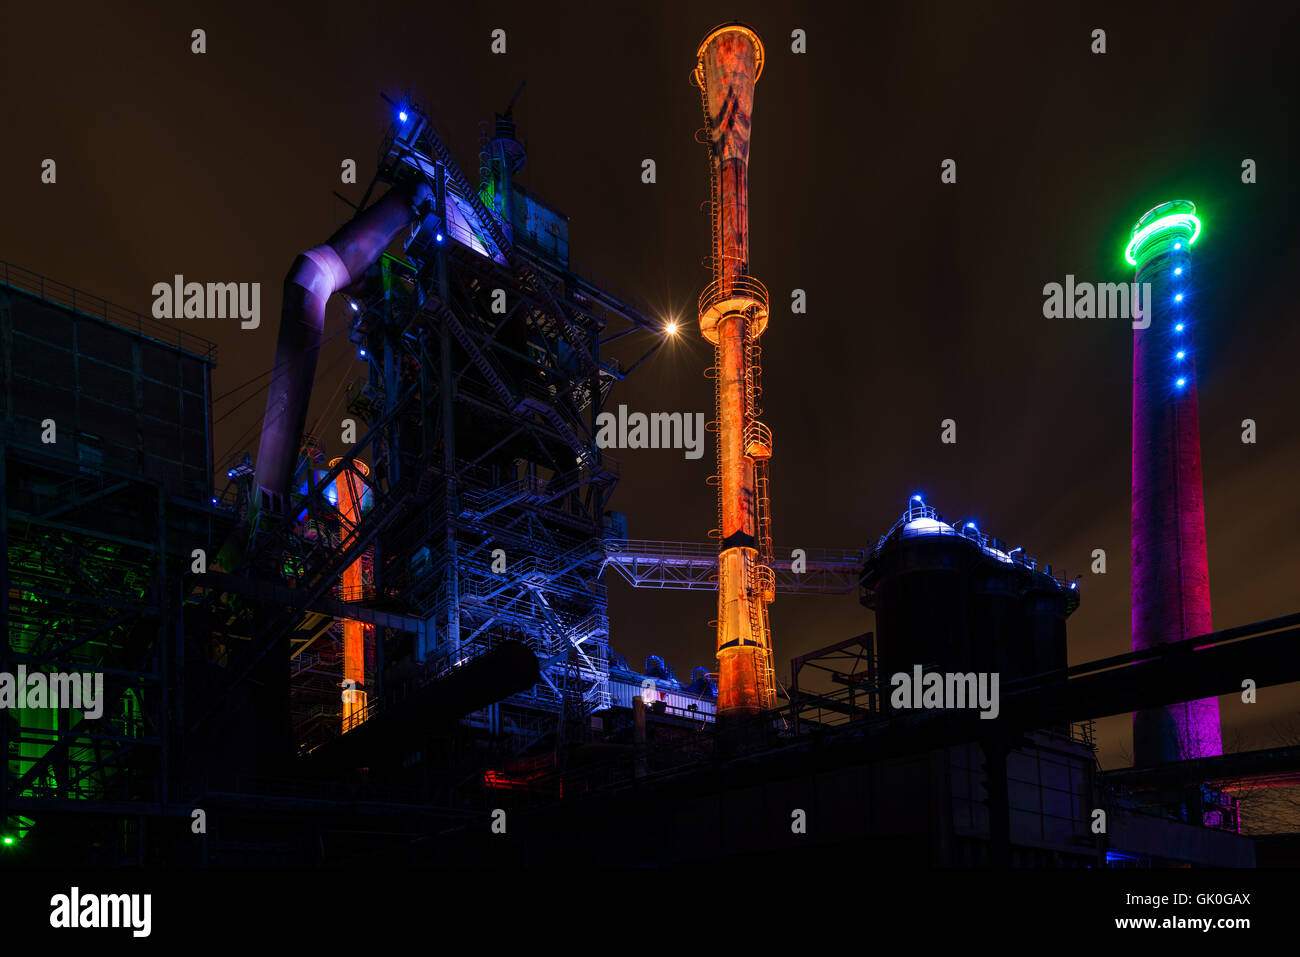 Night shot of Landschaftspark Nord, old illuminated industrial ruins in Duisburg, Germany - Stock Image